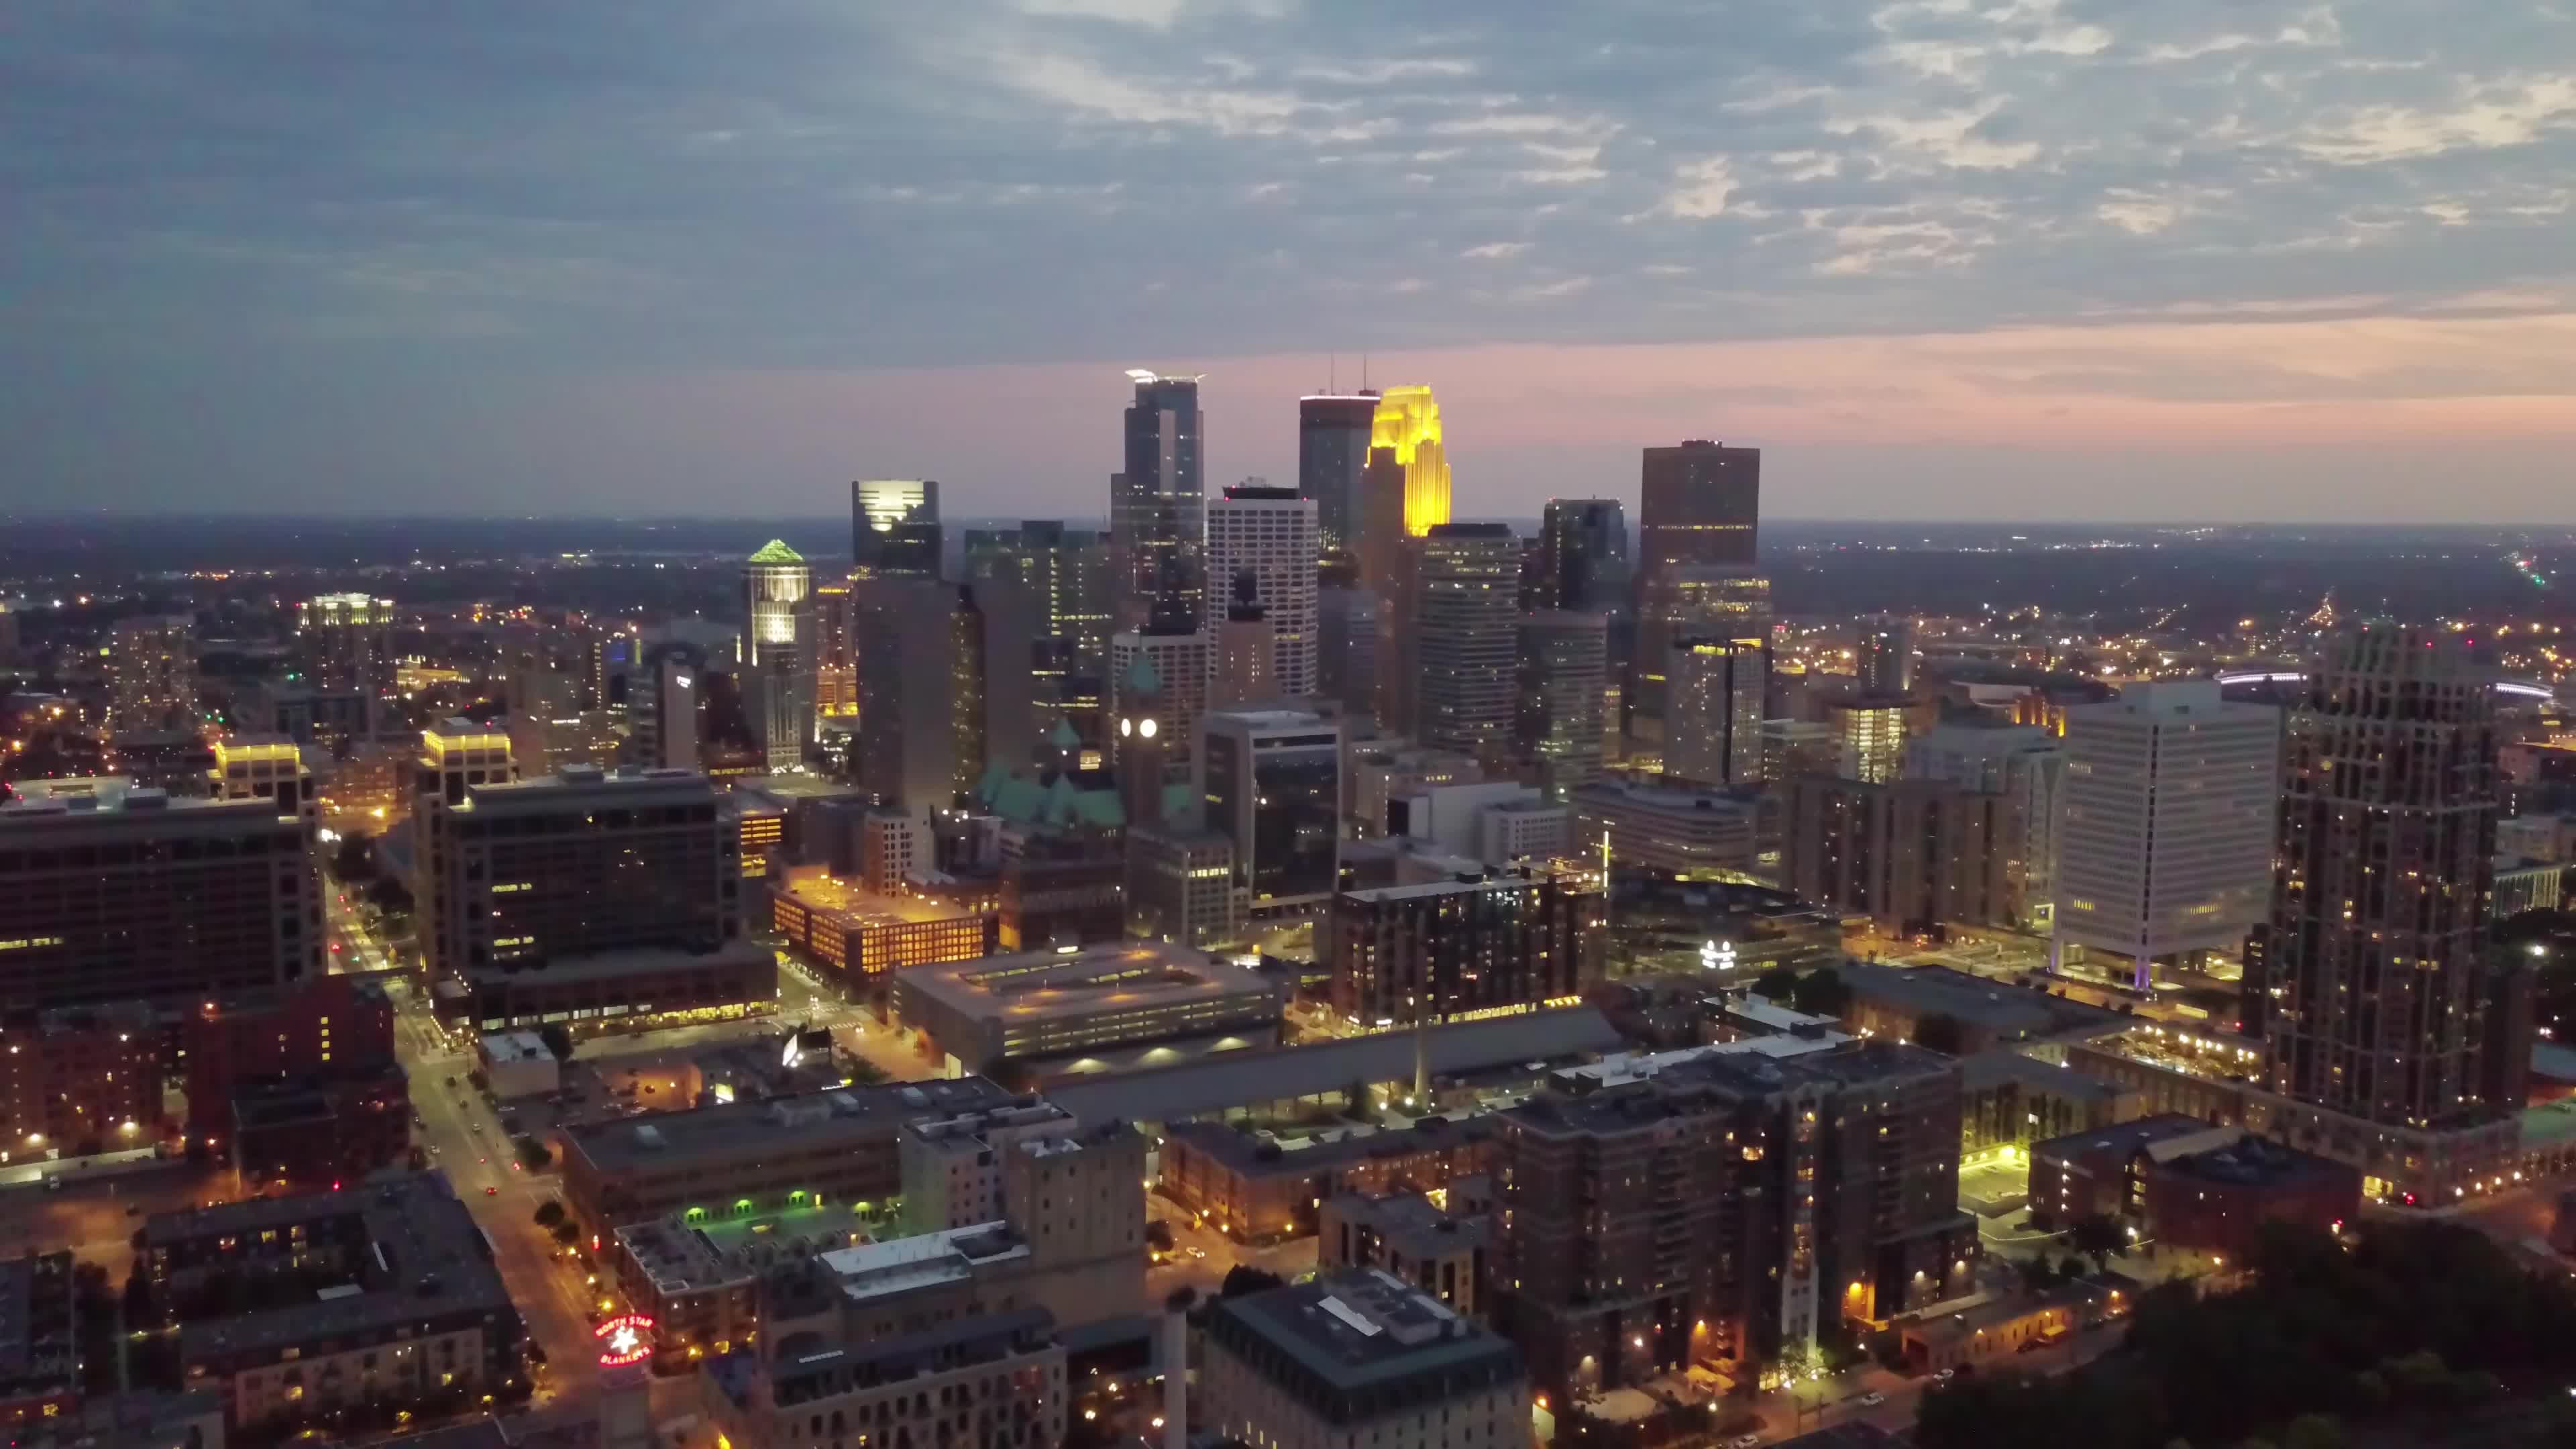 4k, downtown, drone, long exposure, mavic, minneapolis, night, sunset, Minneapolis in 4K - Aerial view - Golden Hour GIFs